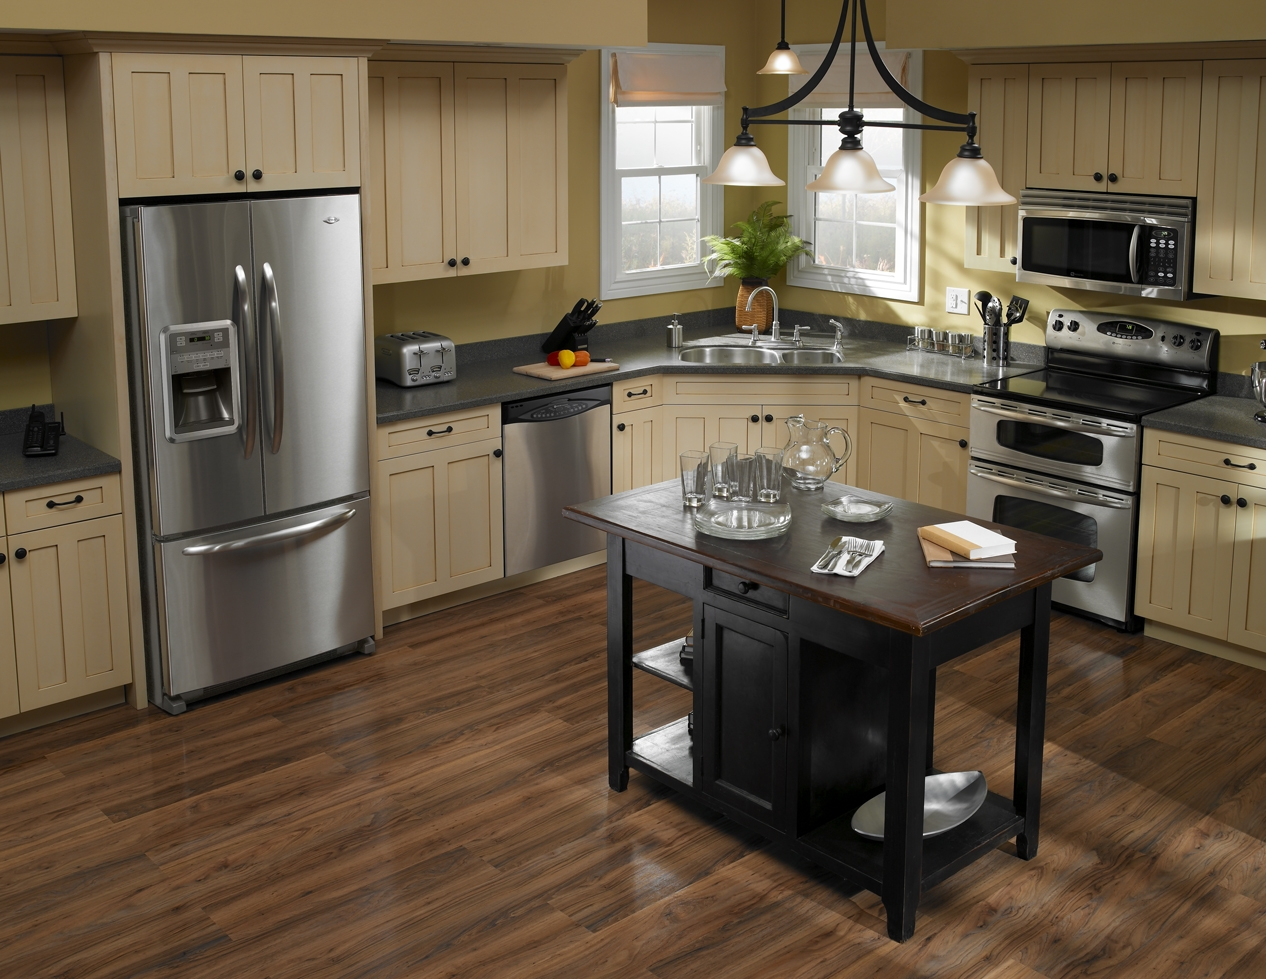 Appliance Kitchen Are Maytag Kitchen Appliances Good Wow Blog